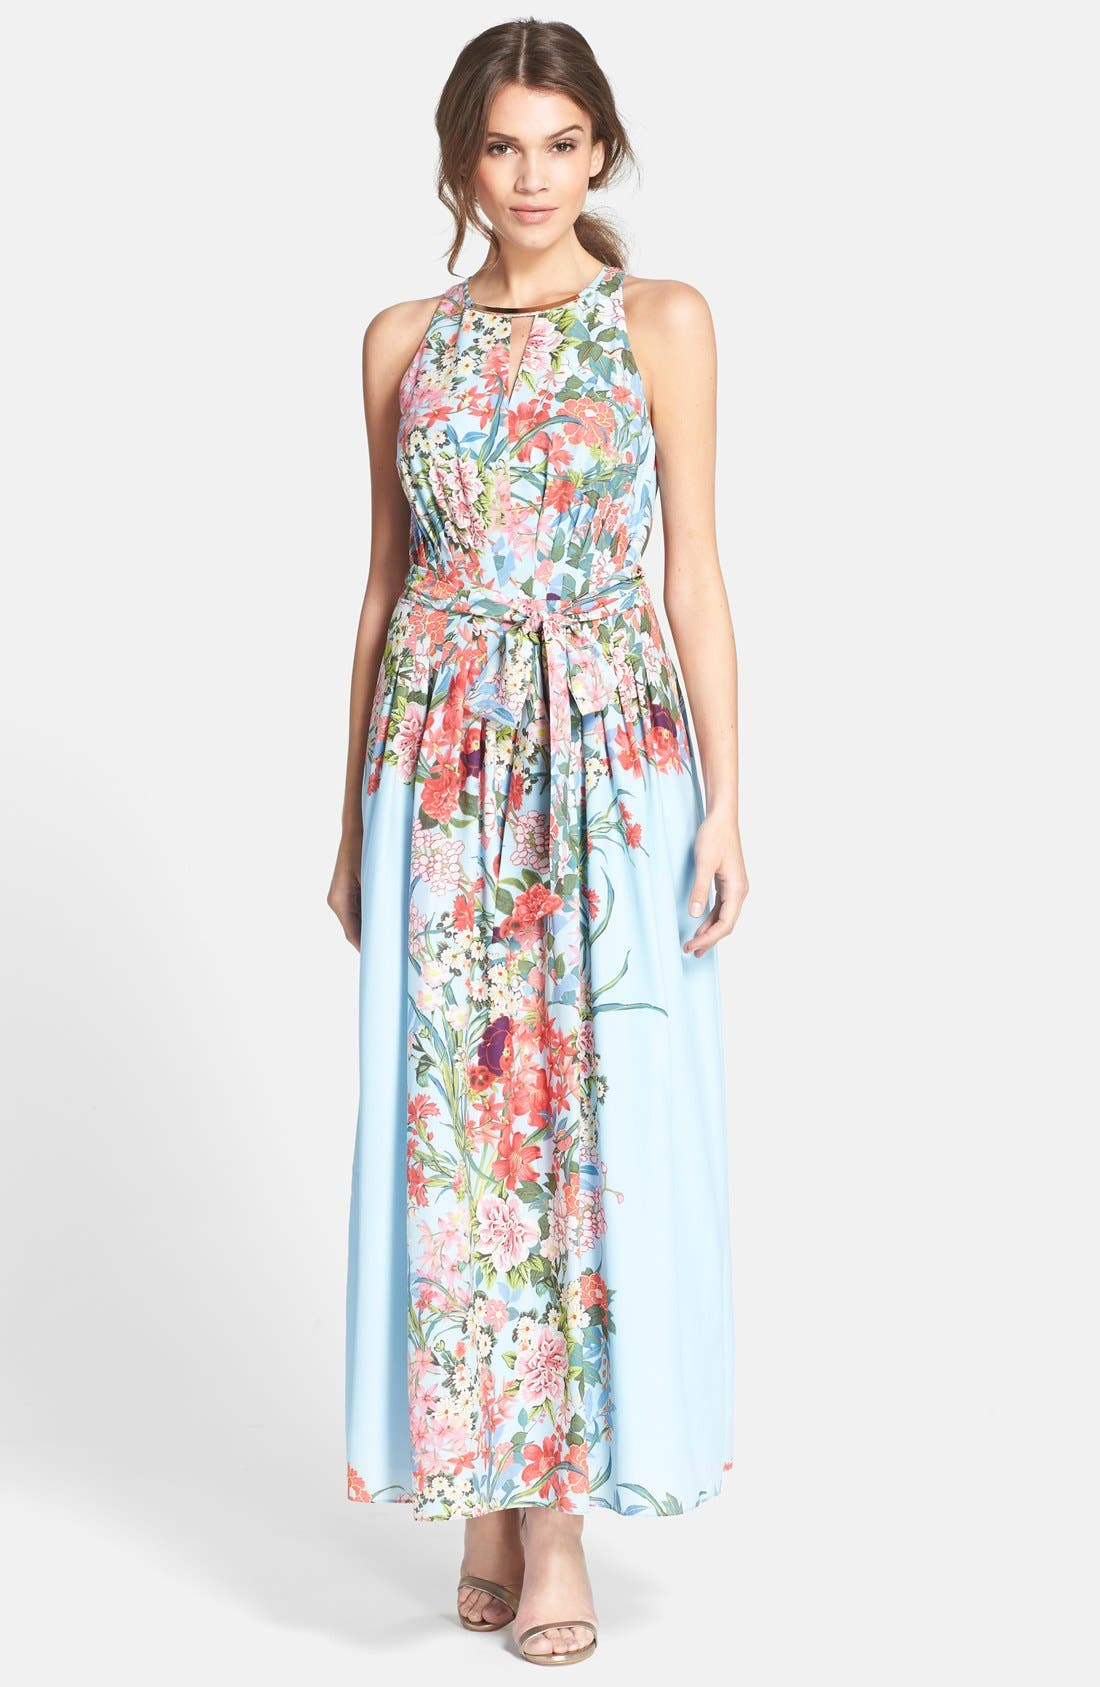 Alternate Image 1 Selected - Adrianna Papell Print Chiffon Fit & Flare Dress